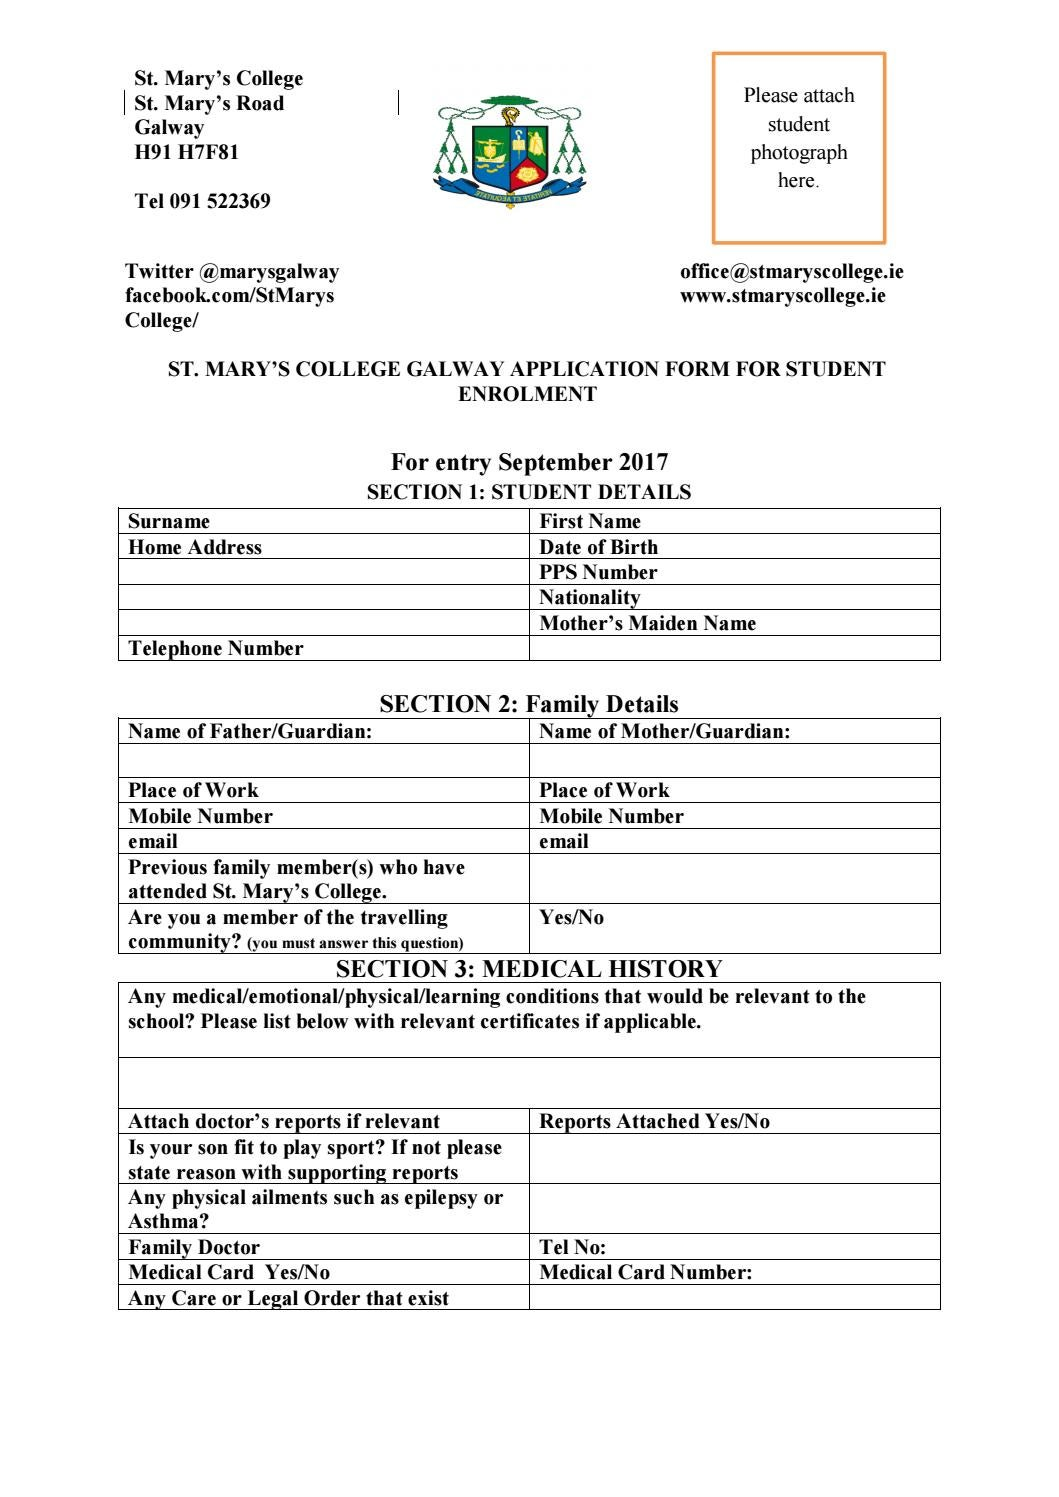 Application form 2017 18 by St. Mary's College Galway - issuu